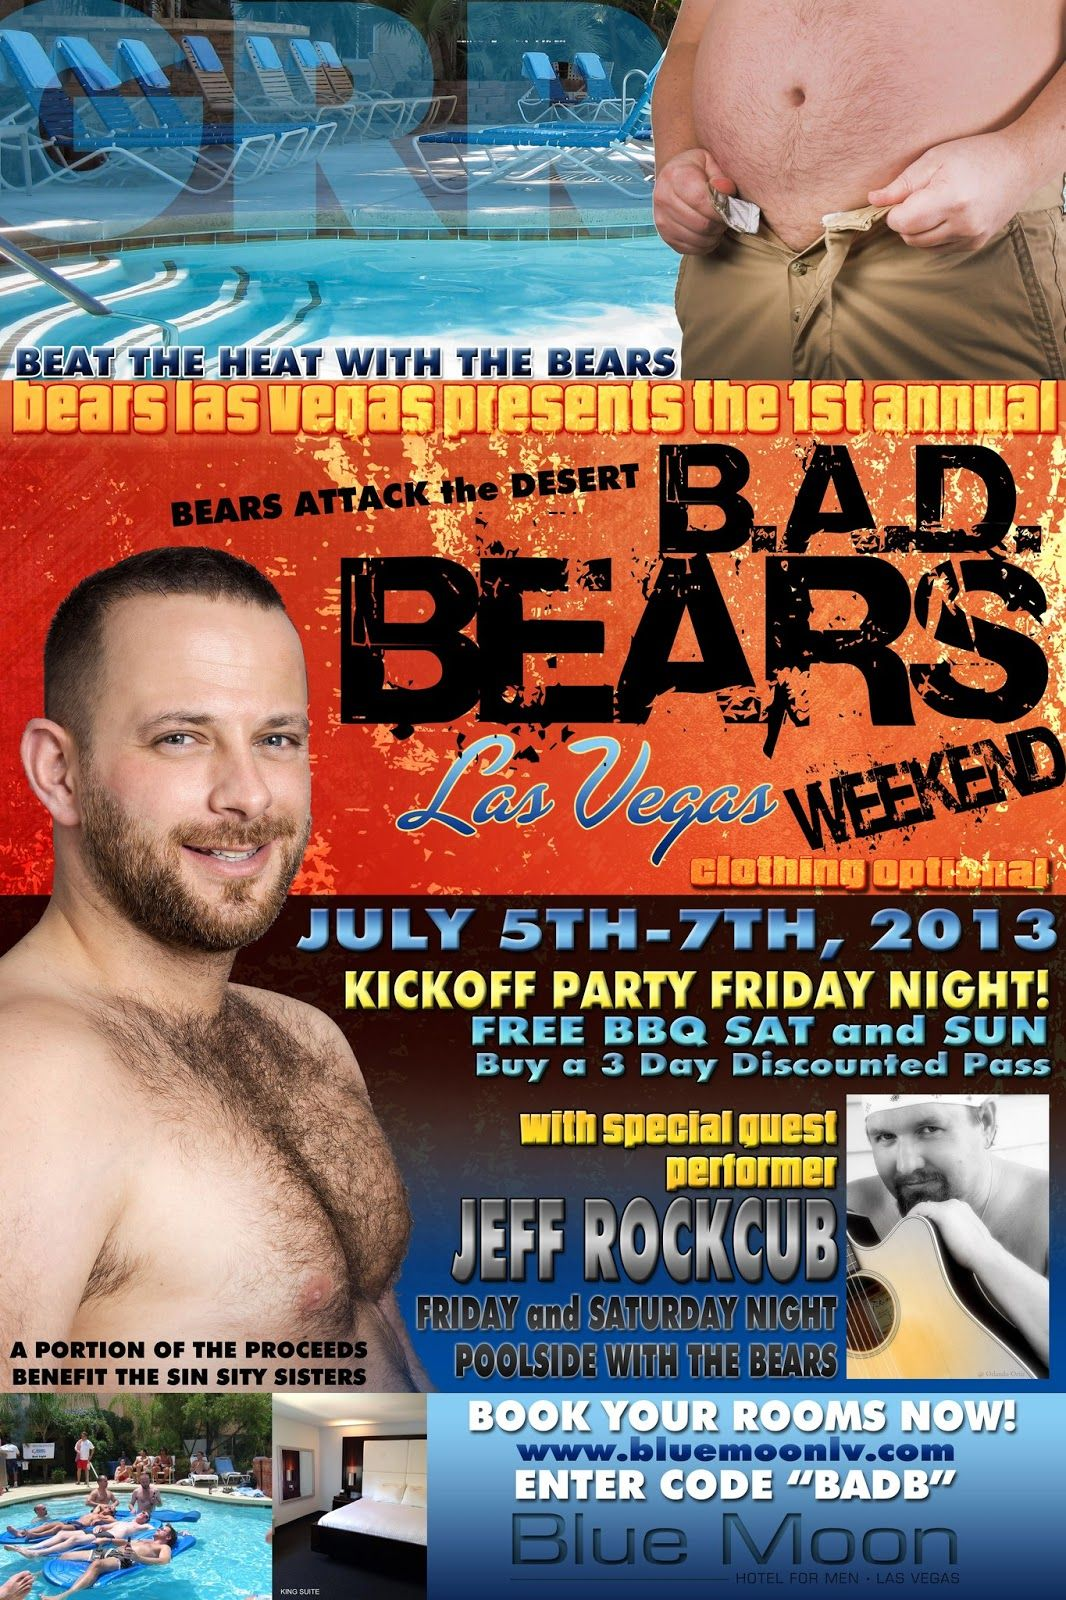 Haircuts for men las vegas bad bears attack the desert gay bear travel gaytravel